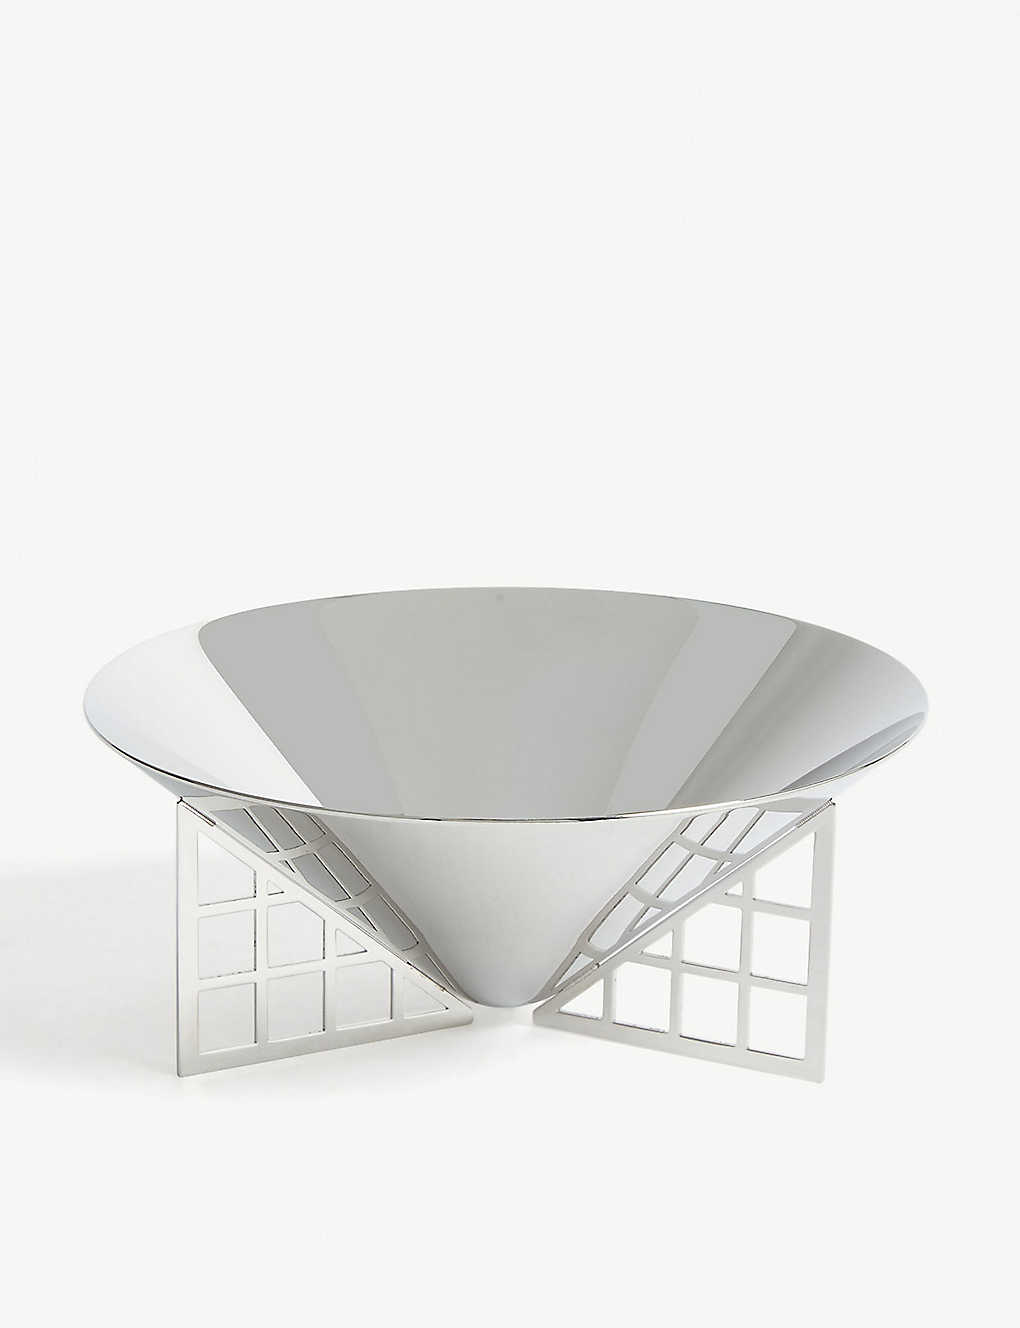 GEORG JENSEN: Matrix bowl